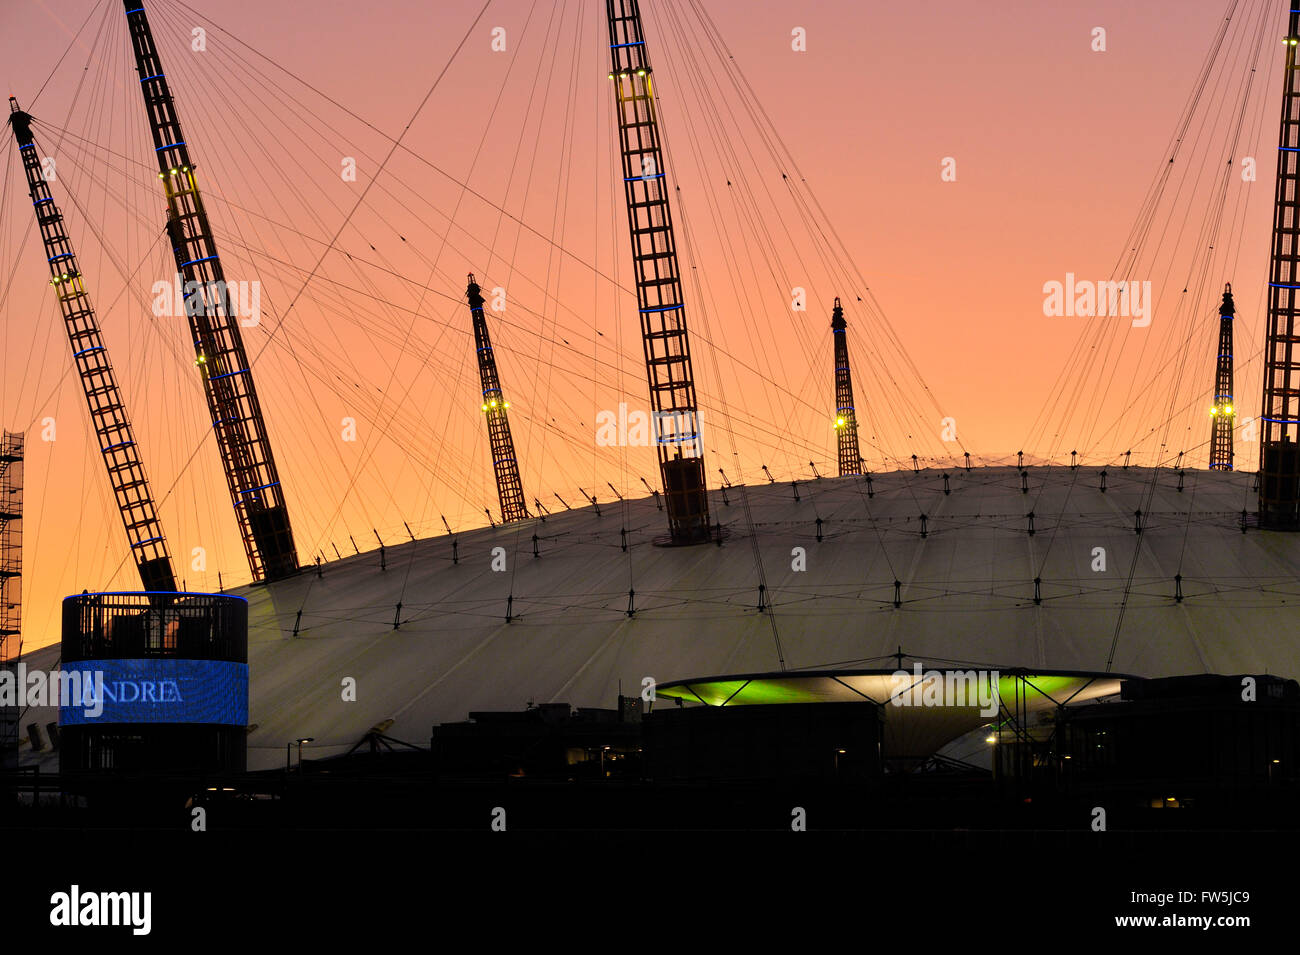 sunset view of the exterior constructional 'spires' of the O2 Arena, Millennium Dome (Millenium), North - Stock Image